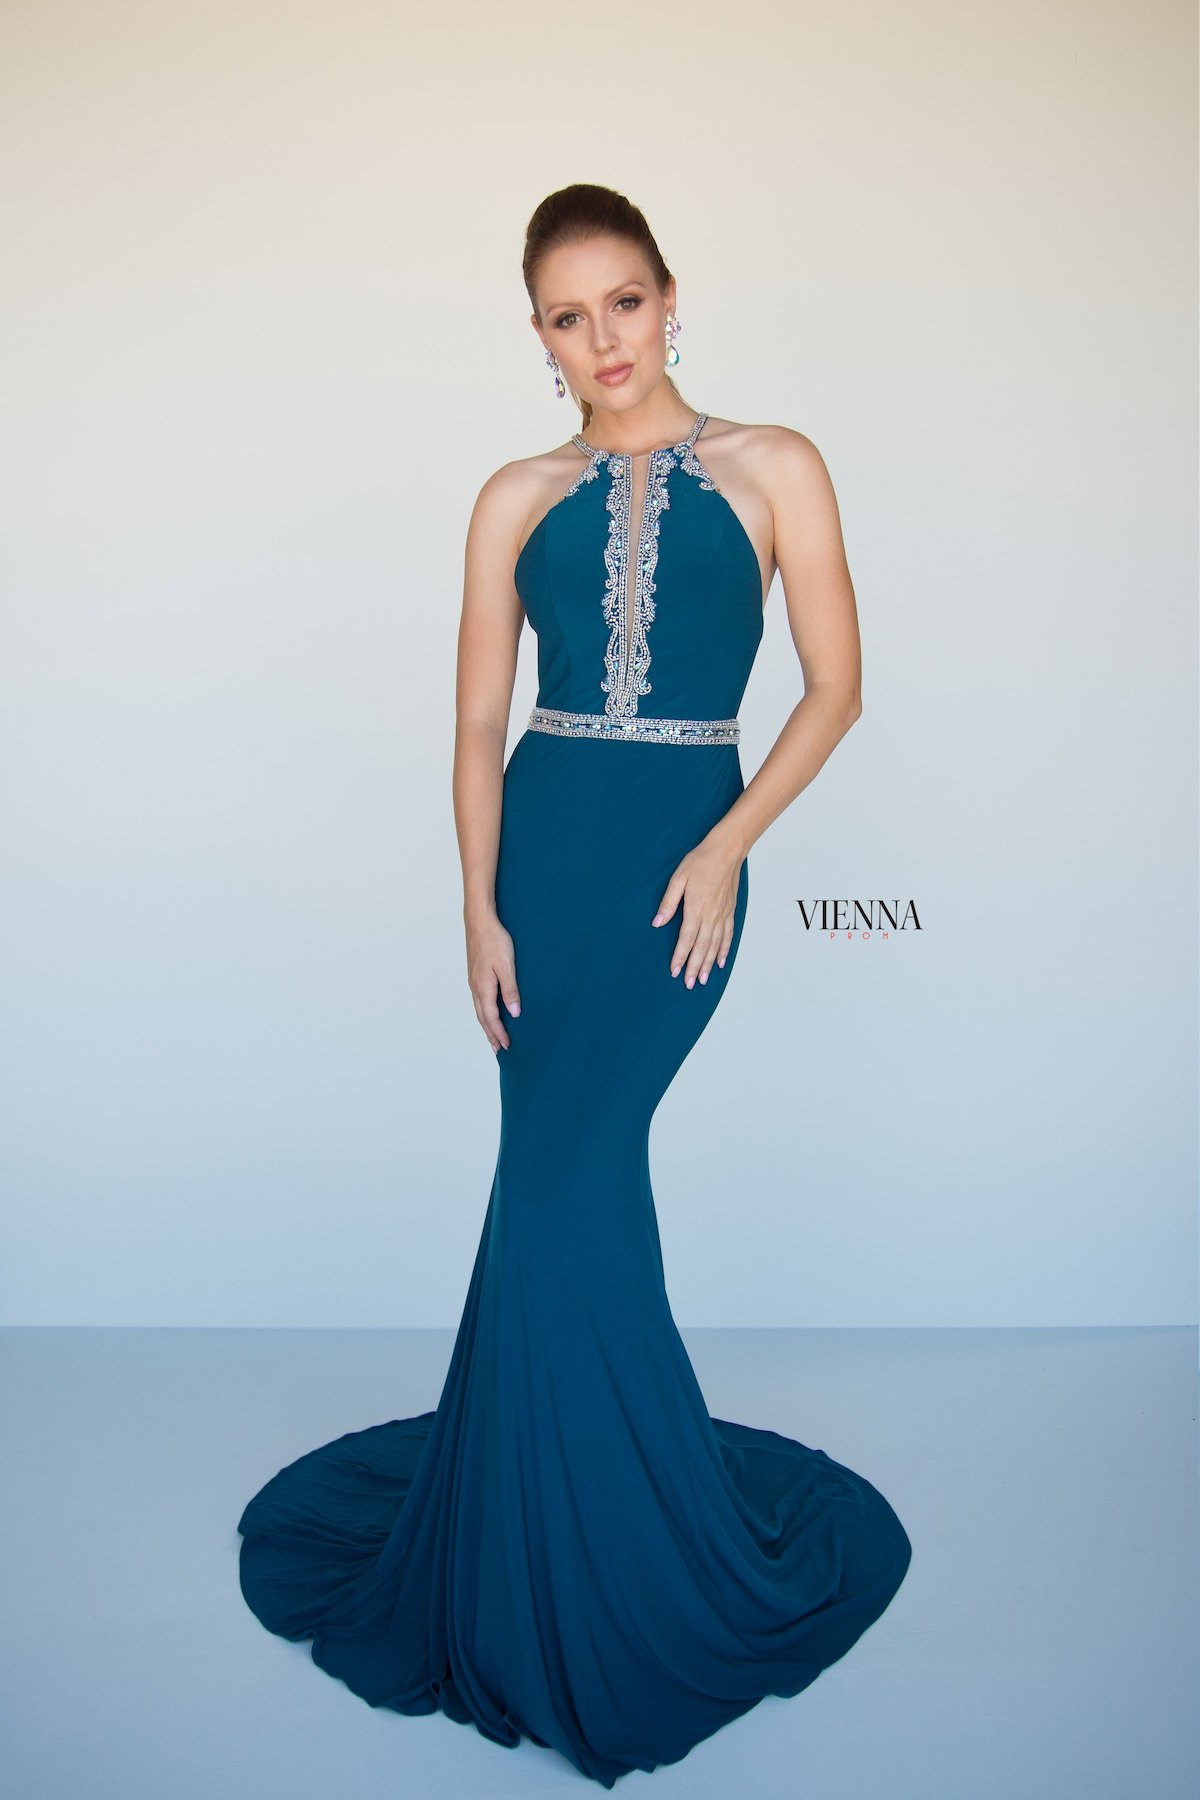 Style 8432 Vienna Black Size 00 Prom Halter Backless Tall Height Mermaid Dress on Queenly